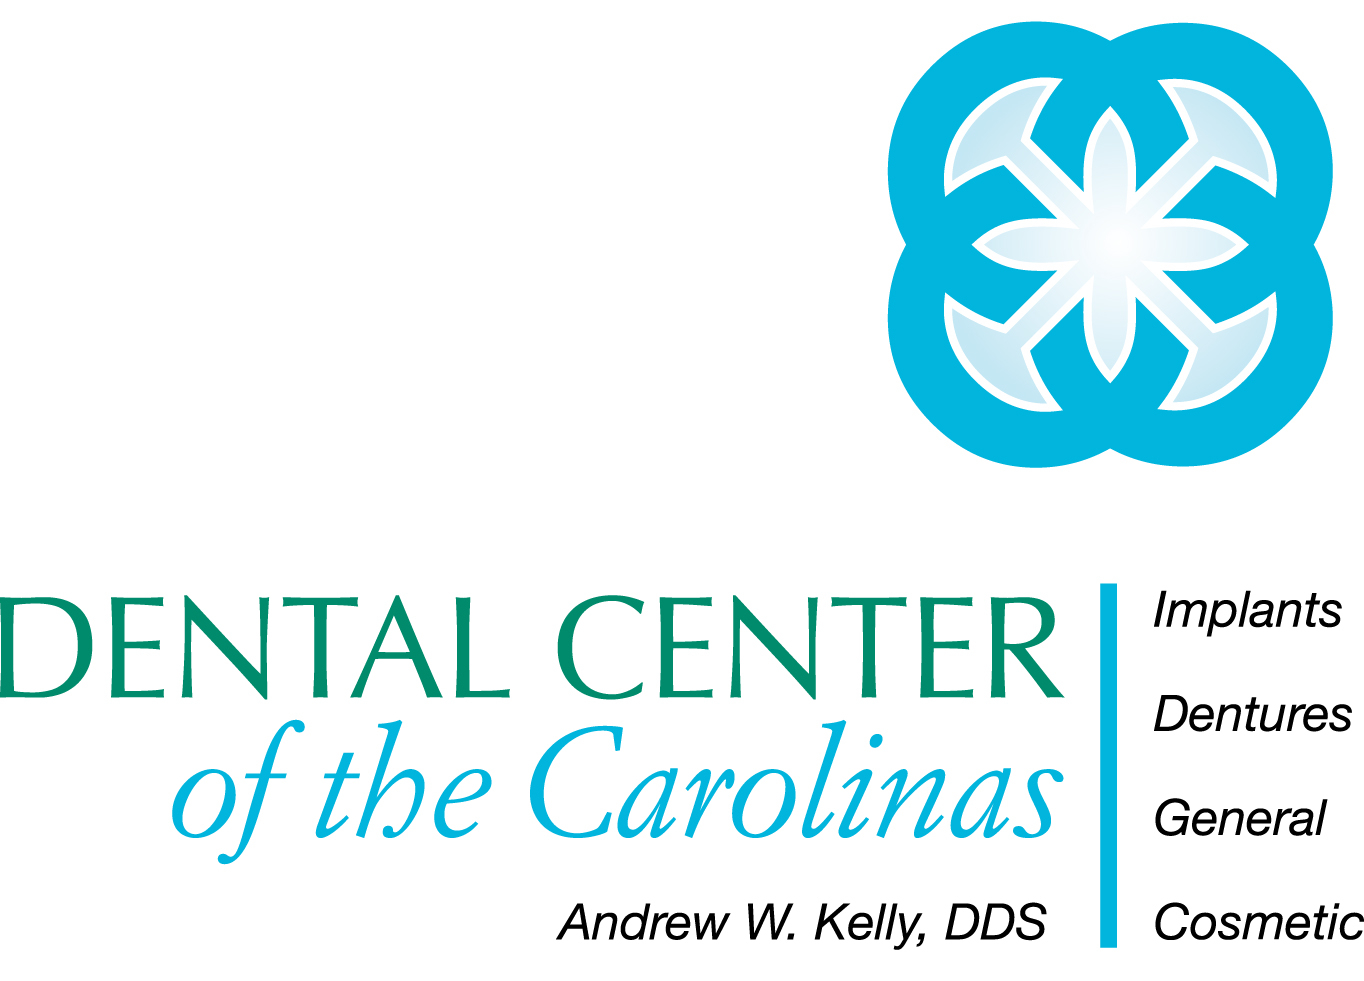 Dental Center of the Carolinas, a Top-Rated Dentist in Winston Salem, NC Offers a Full Spectrum of Dental Services Provided by Dr. Andrew Kelly